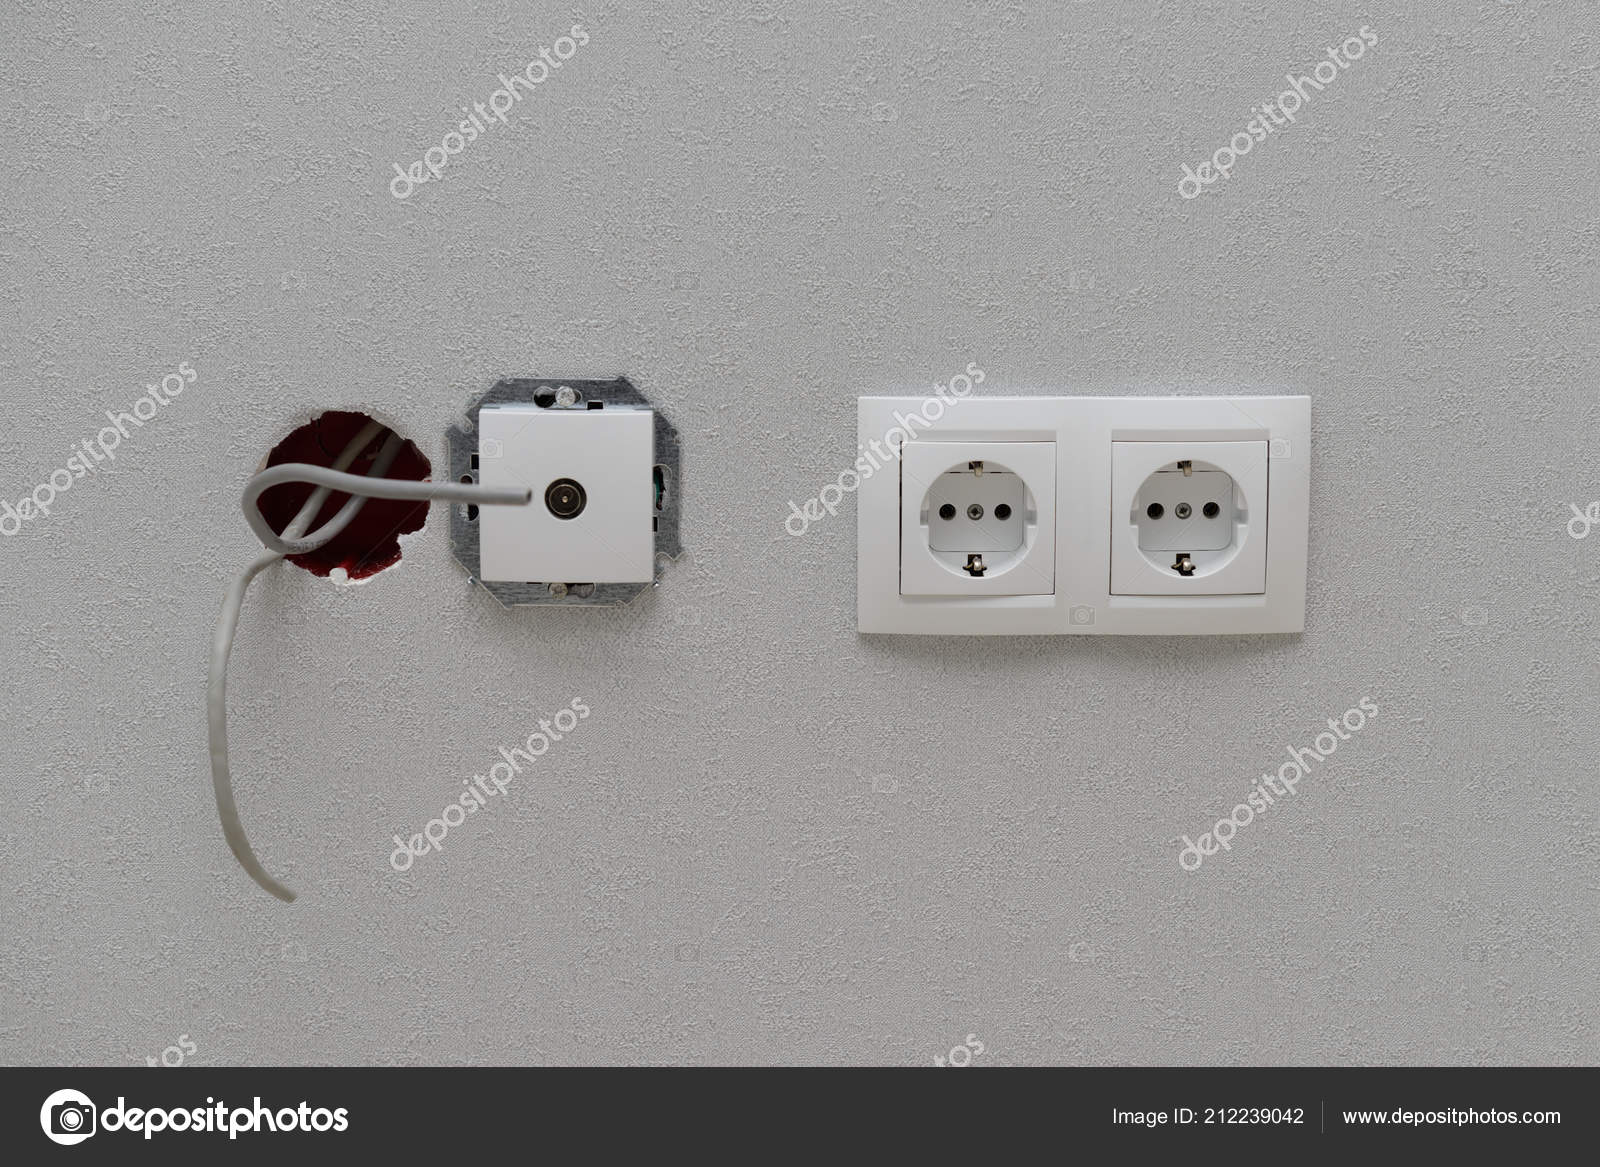 hight resolution of electric power outlets connection protruding wires wall wallpaper stock photo